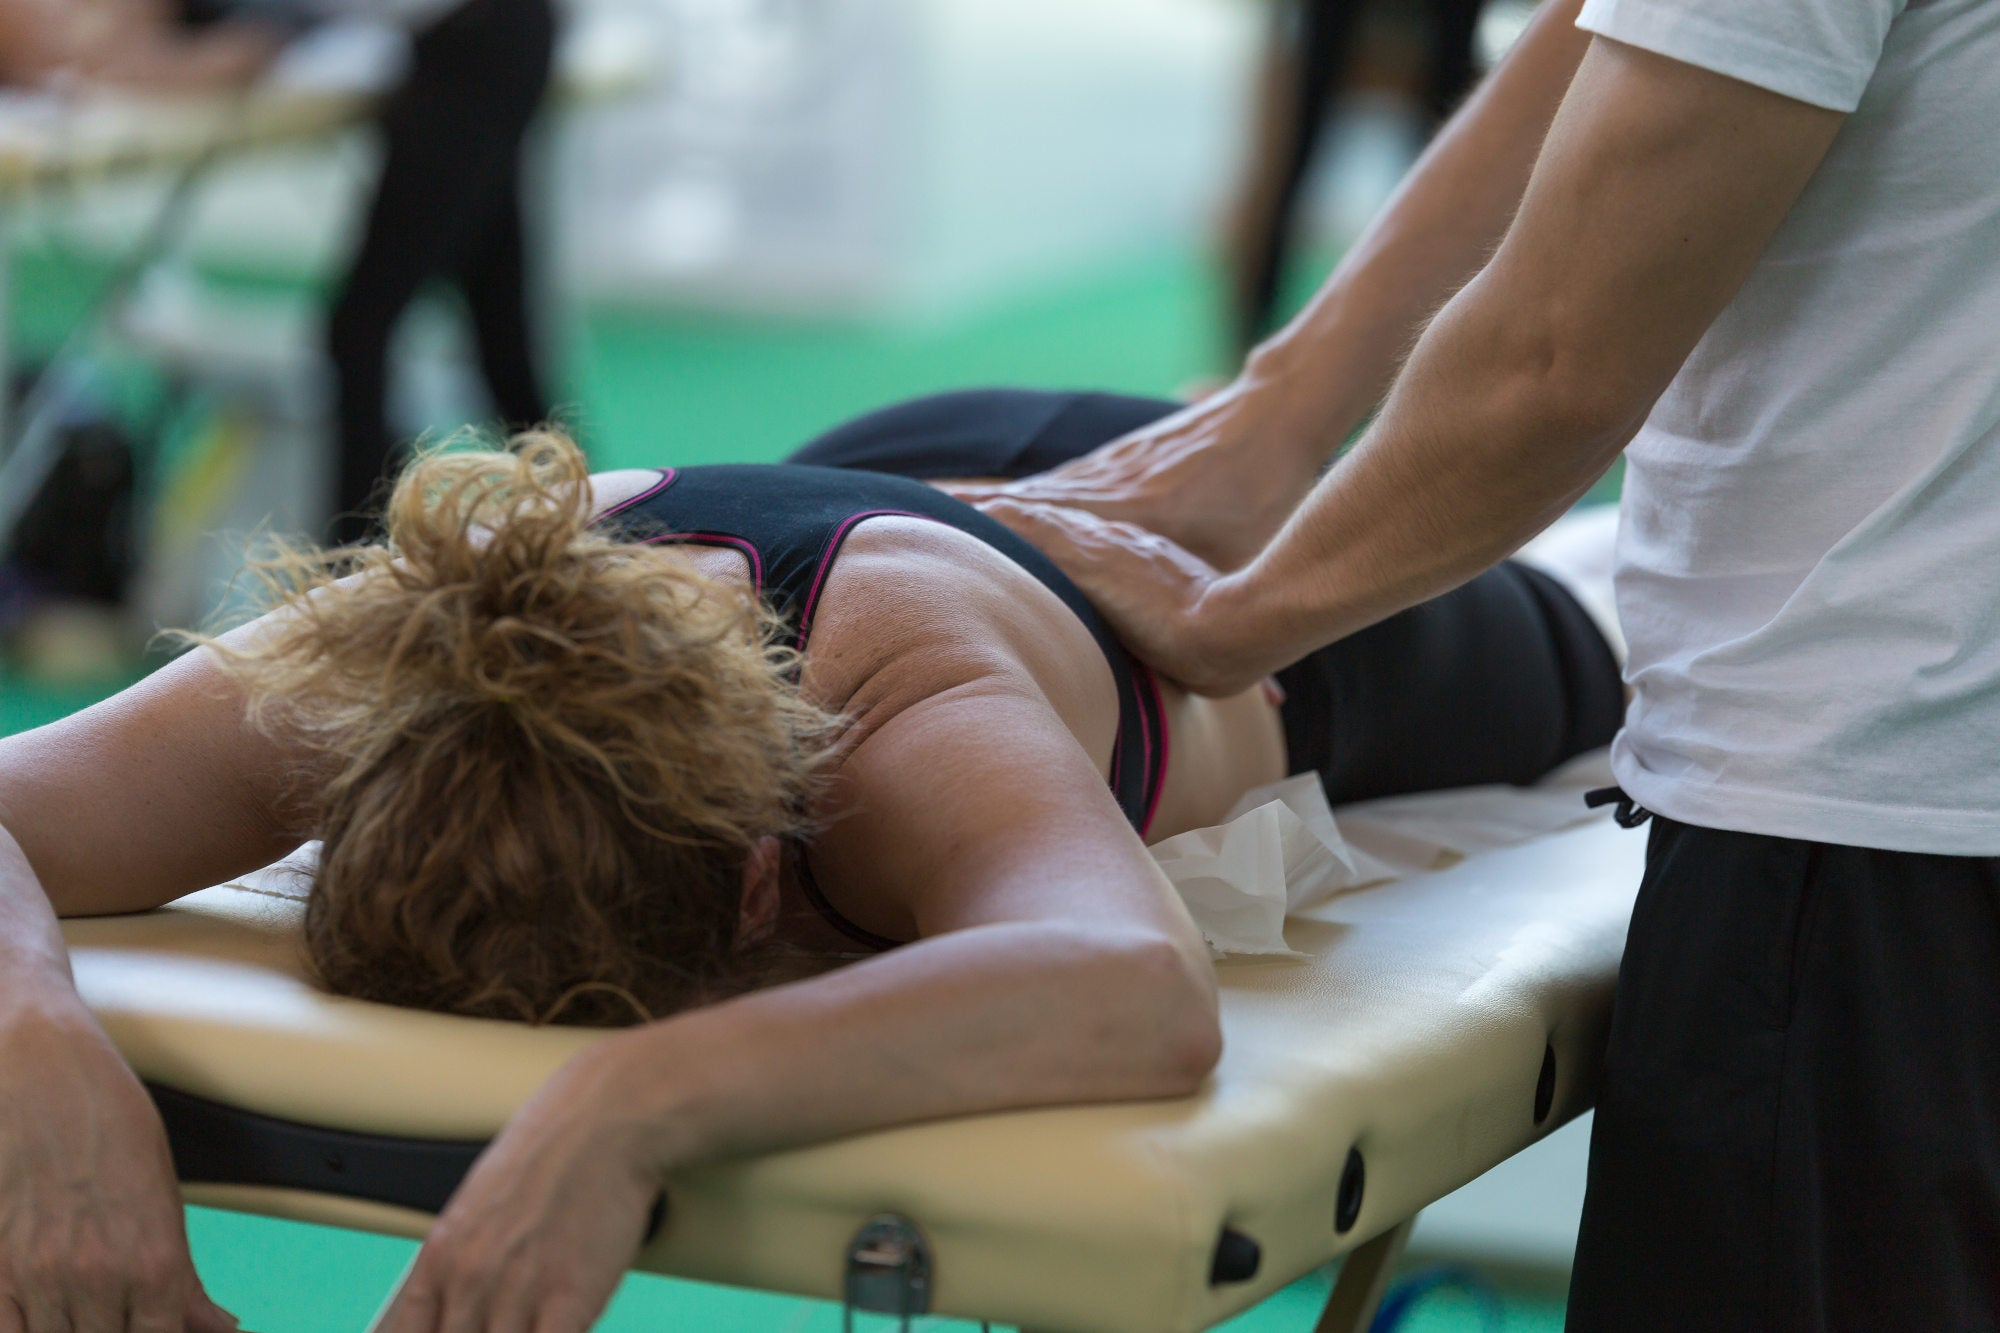 Athletic woman getting back massage after working out